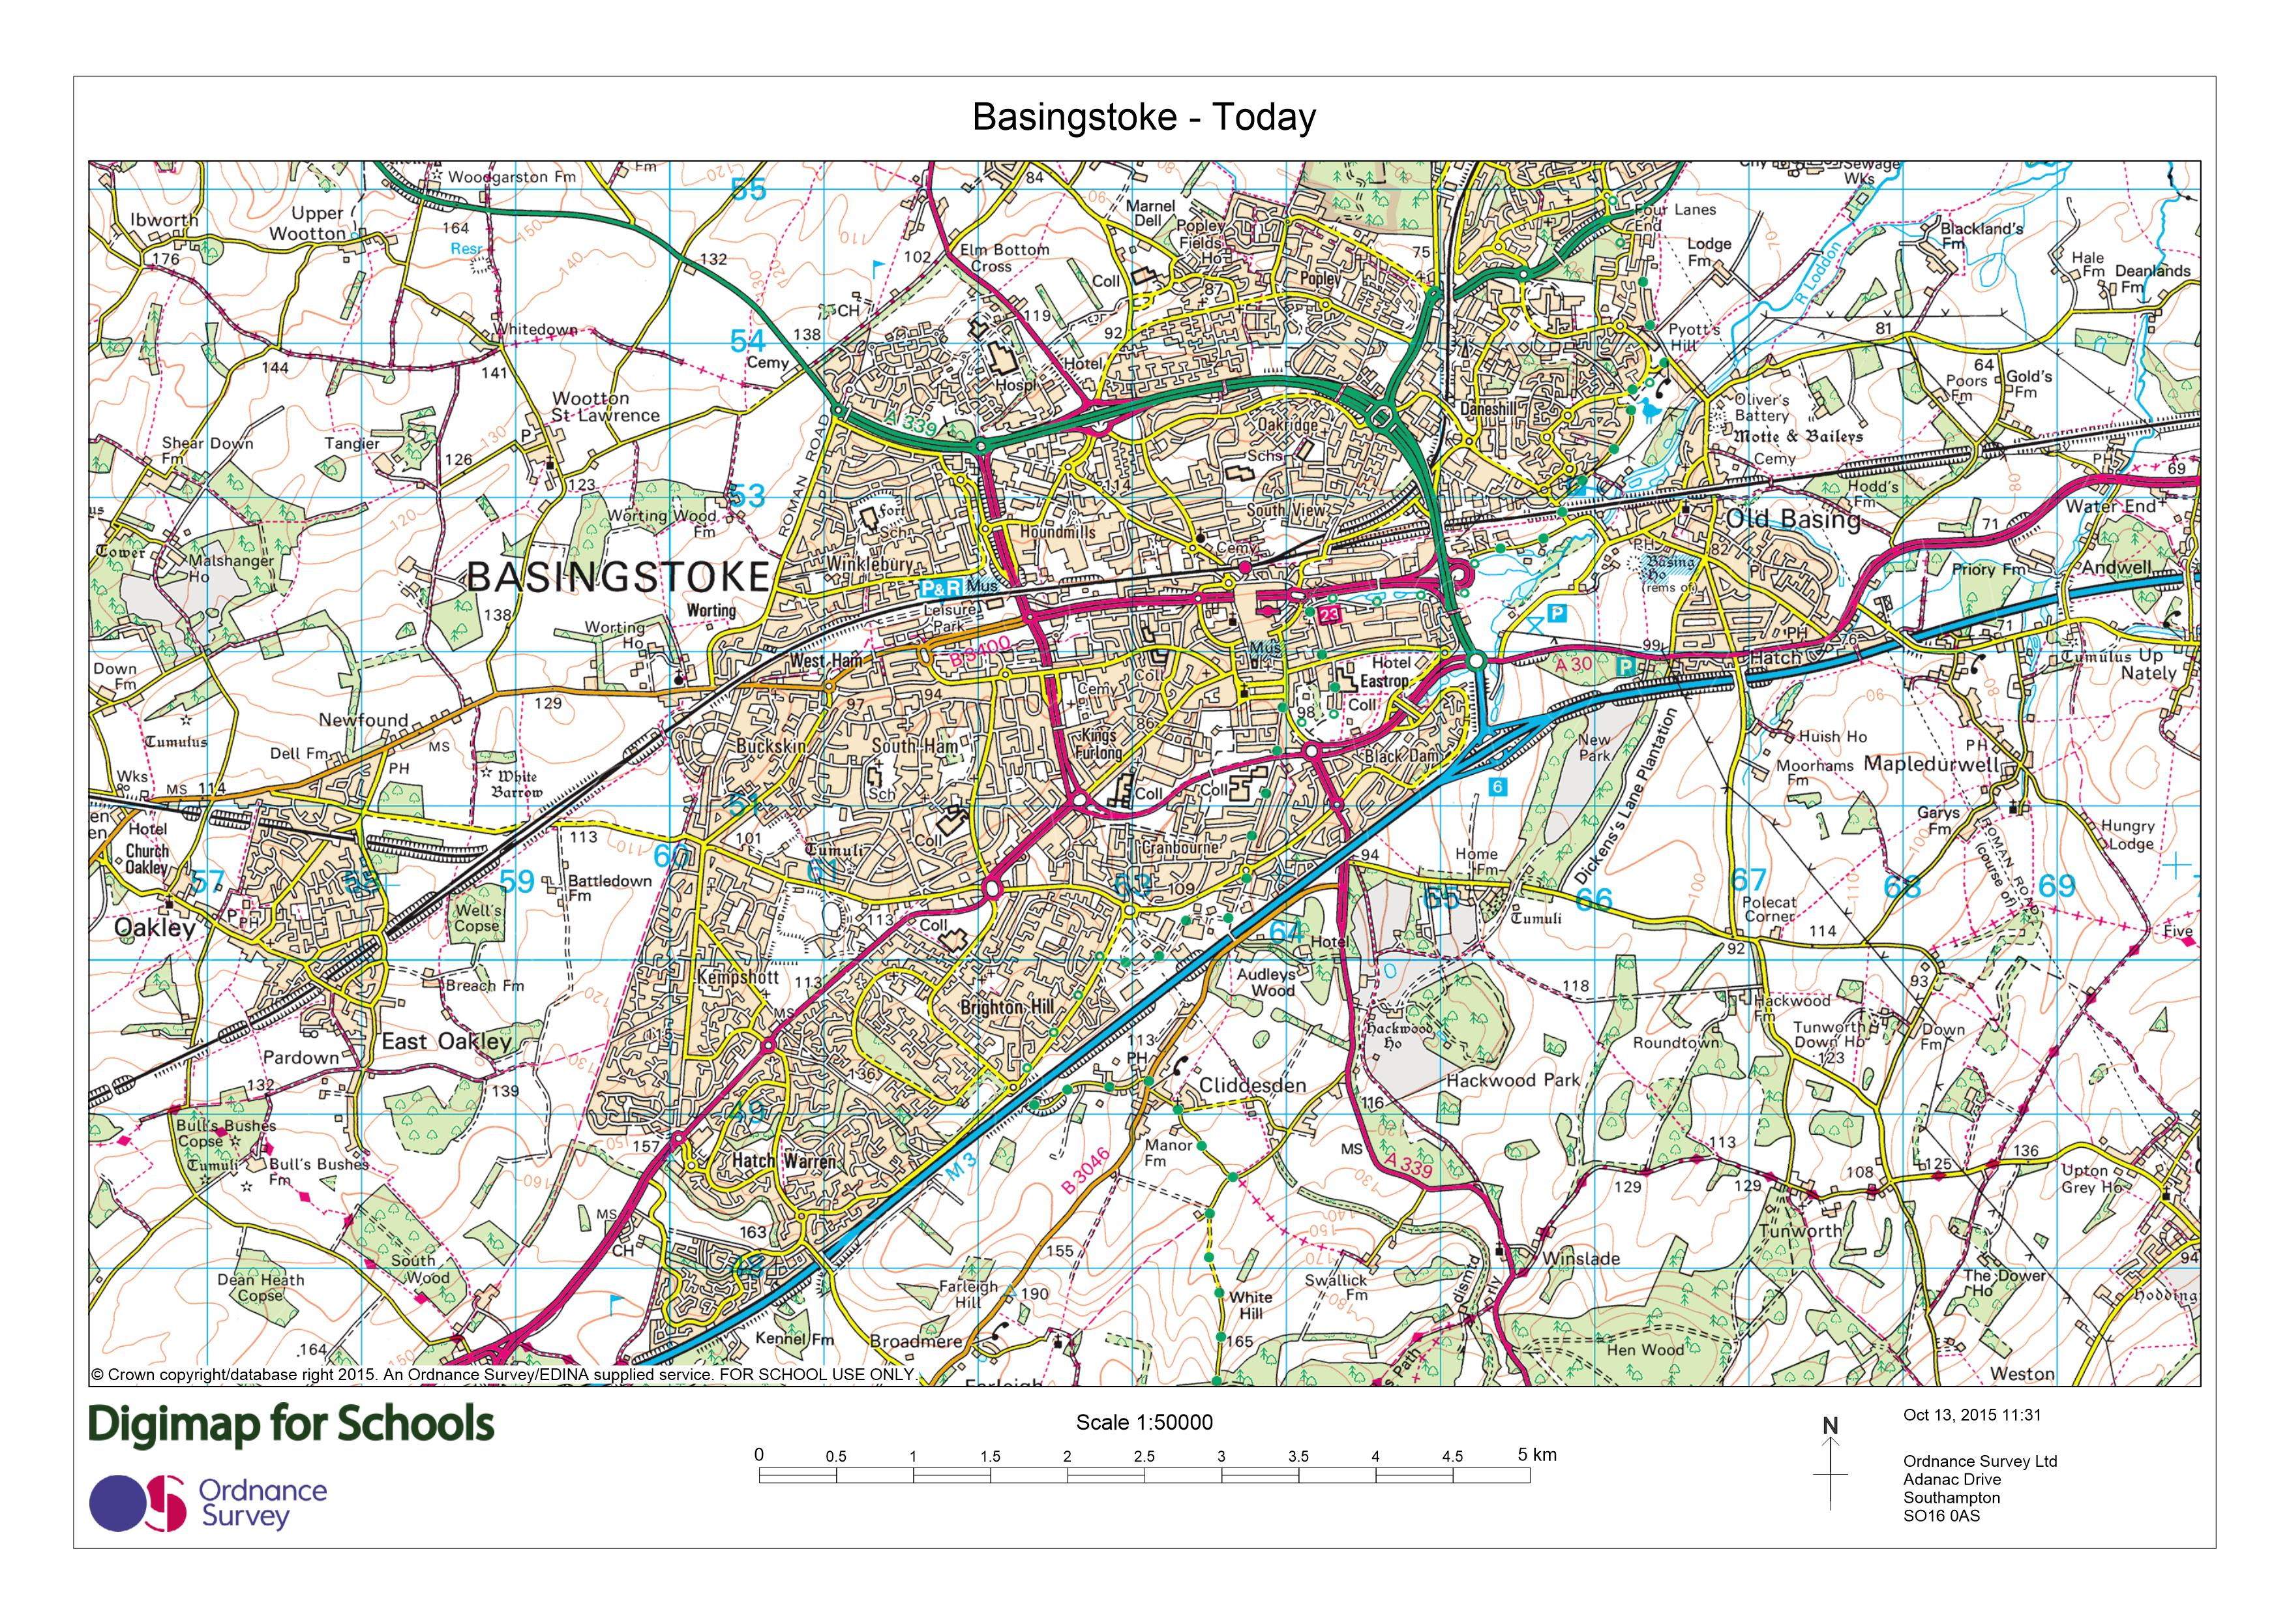 mapping apps with Digimap For Schools Launches 1950s Maps Of Great Britain on Turfloop as well 14 Free Holiday Projects 3 together with ment 55015 as well Paws kettering likewise 213987cc.